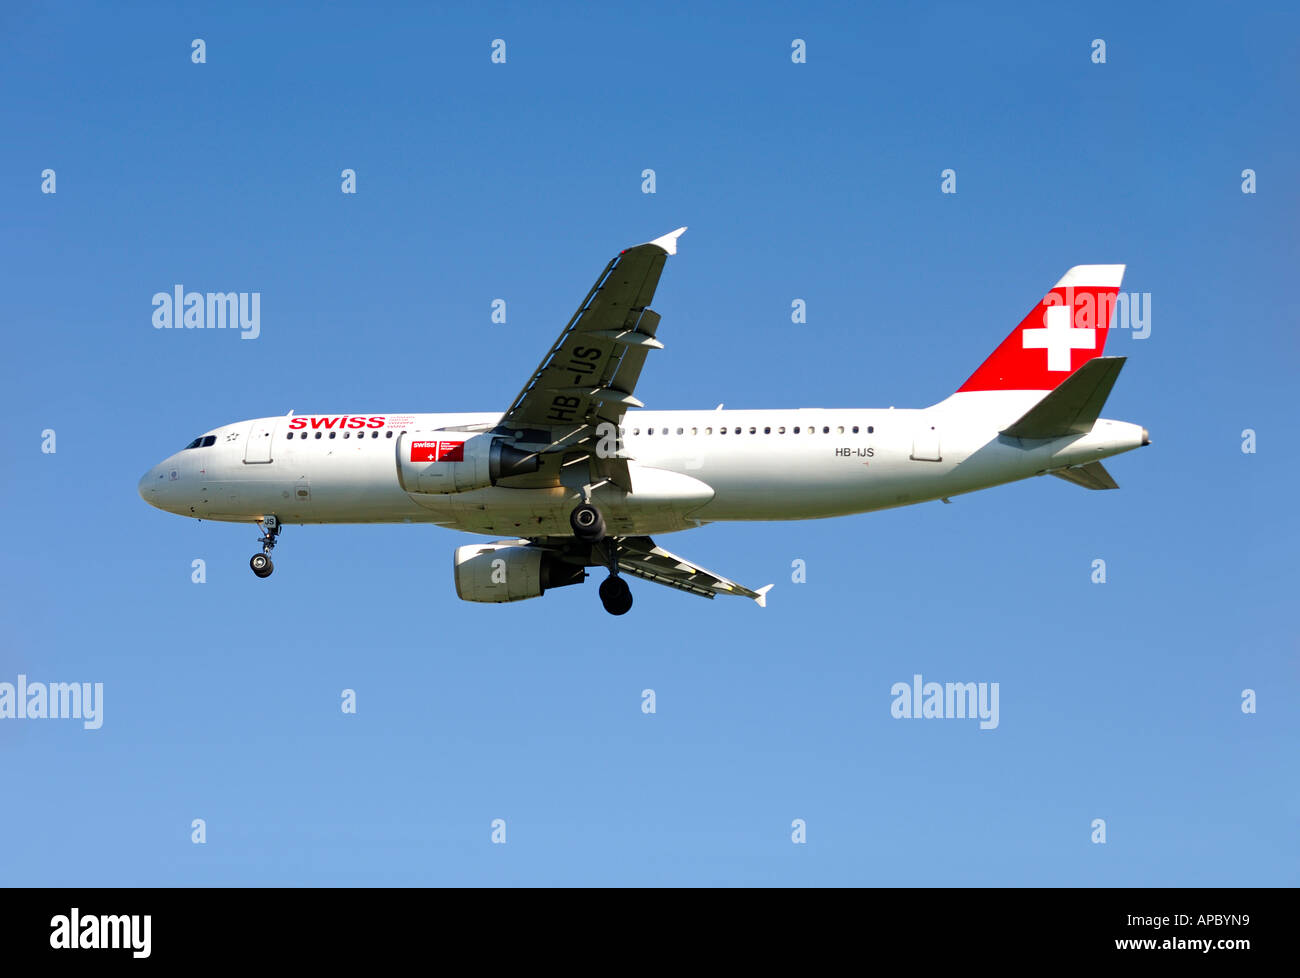 Airbus A320-214, Swiss International Air Lines, Switzerland - Stock Image